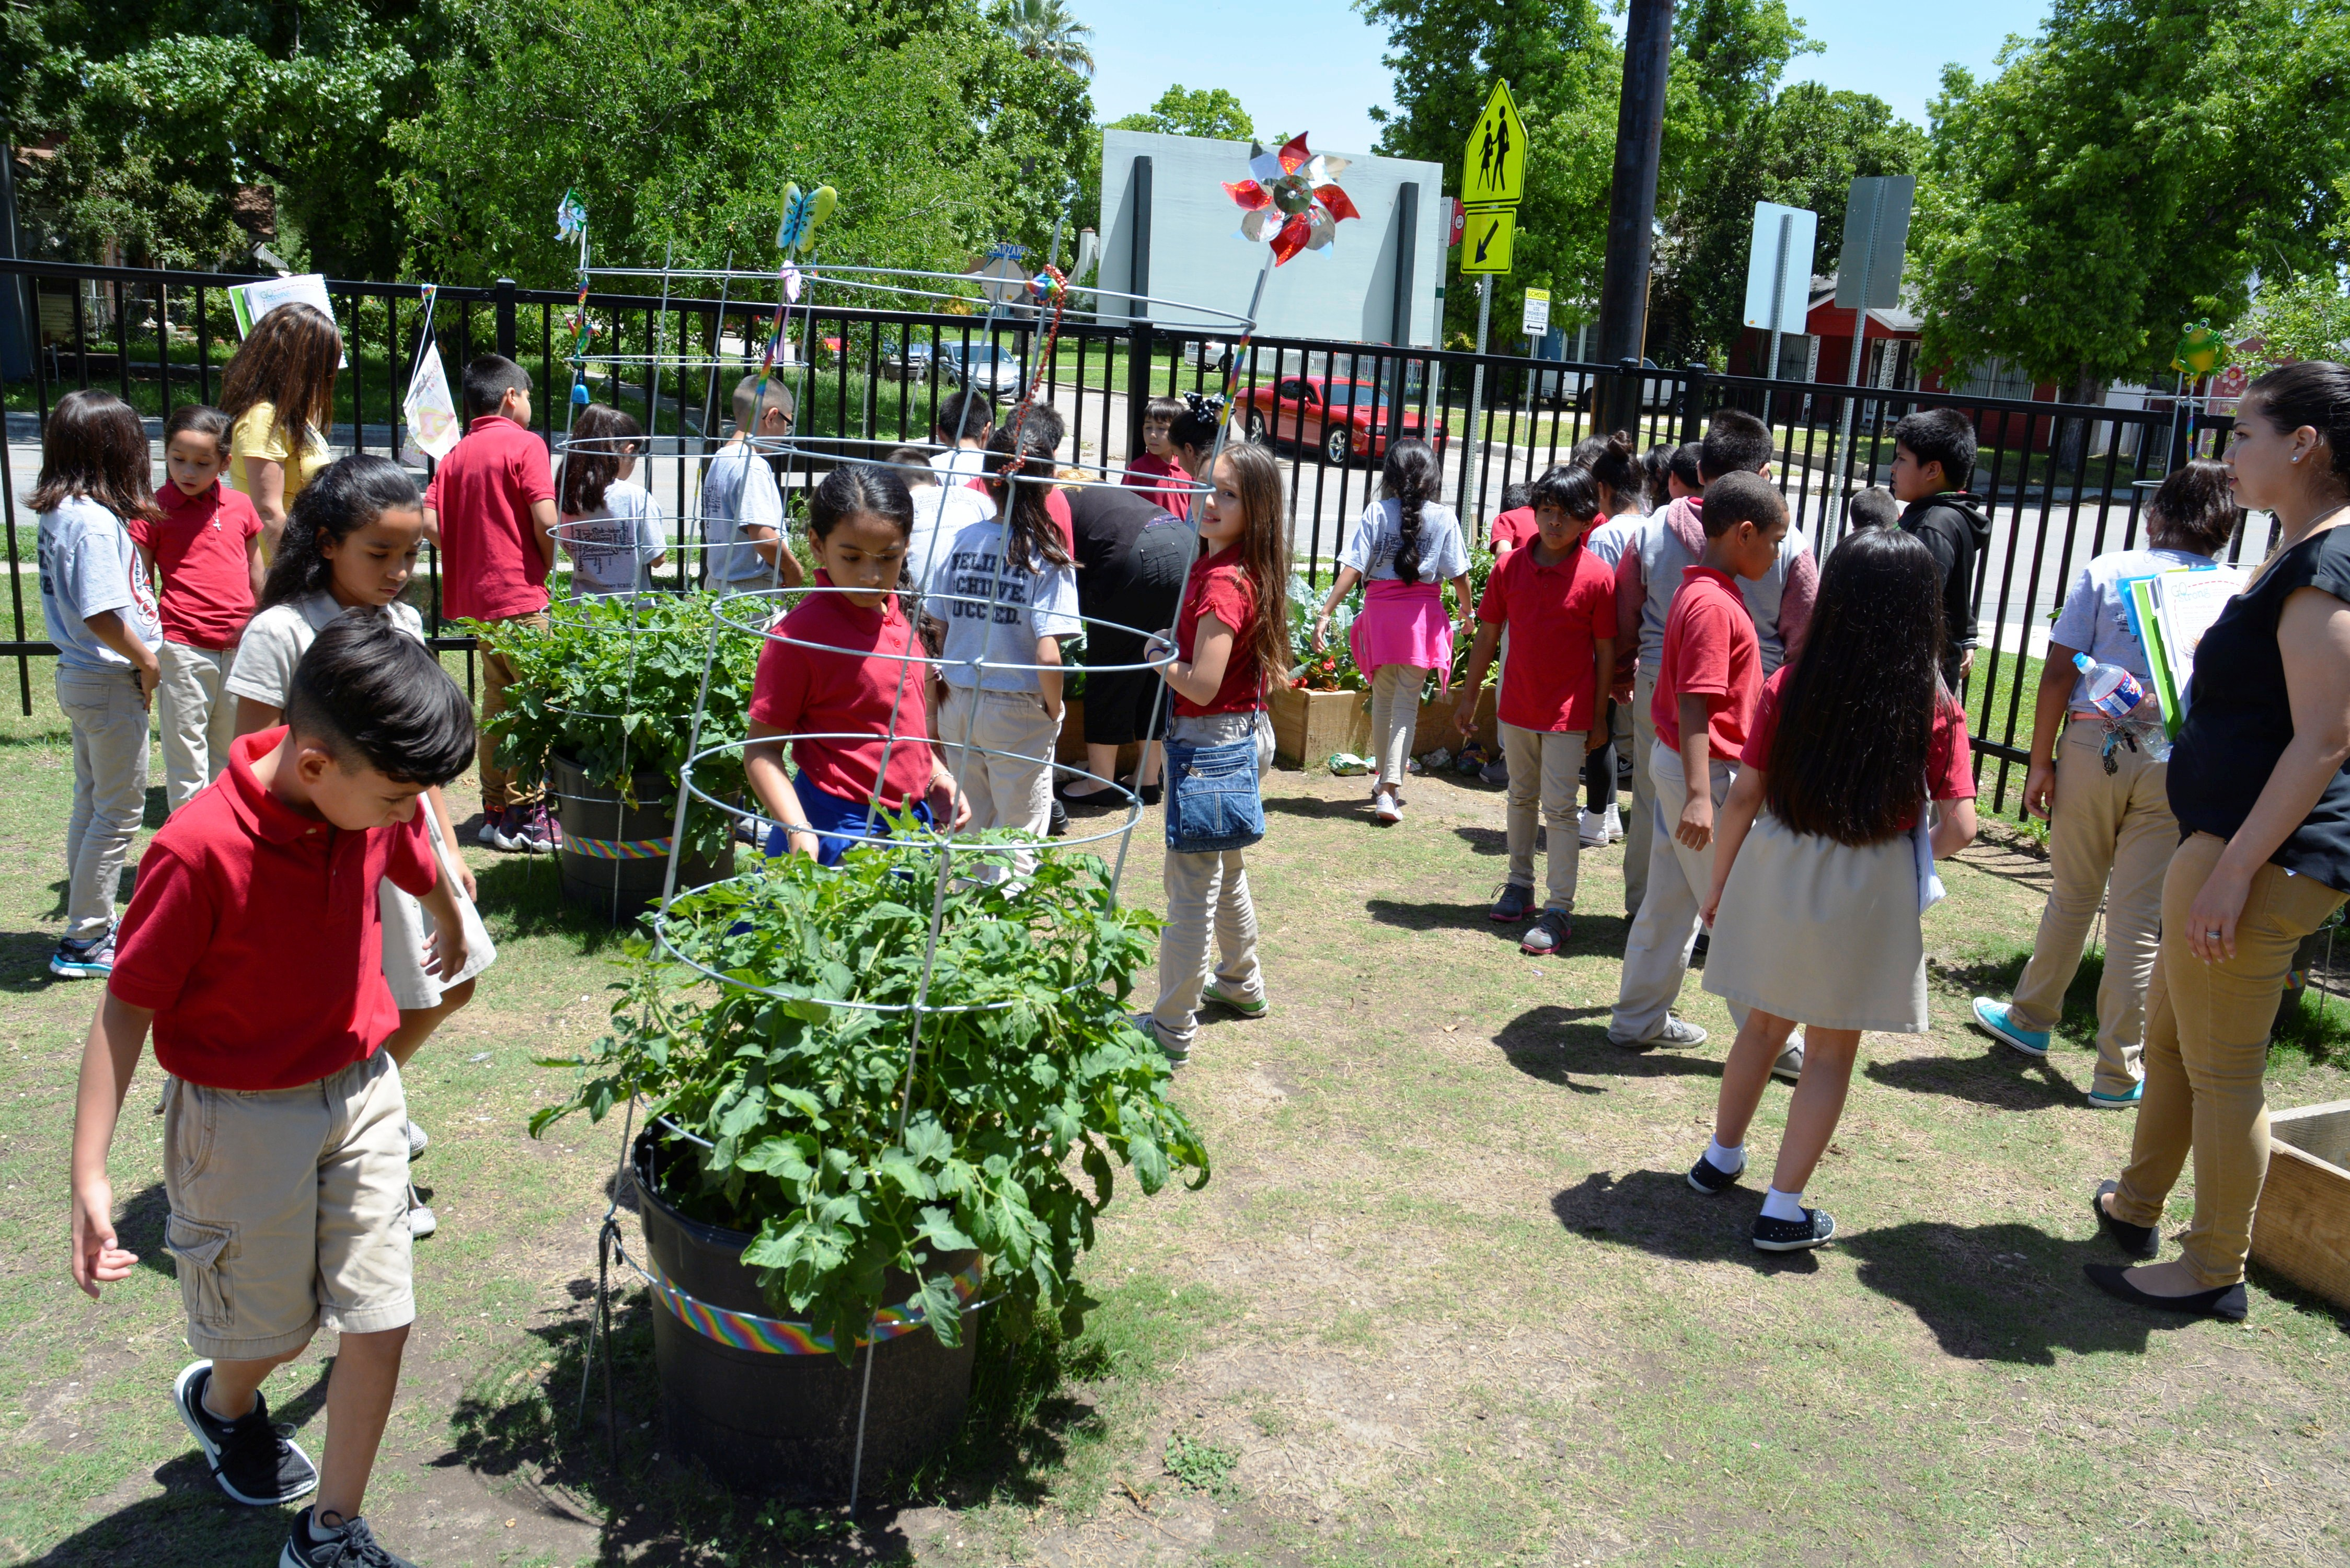 Learn Grow Eat And Go Program Teaches Youth About Gardening Nutrition Physical Activity